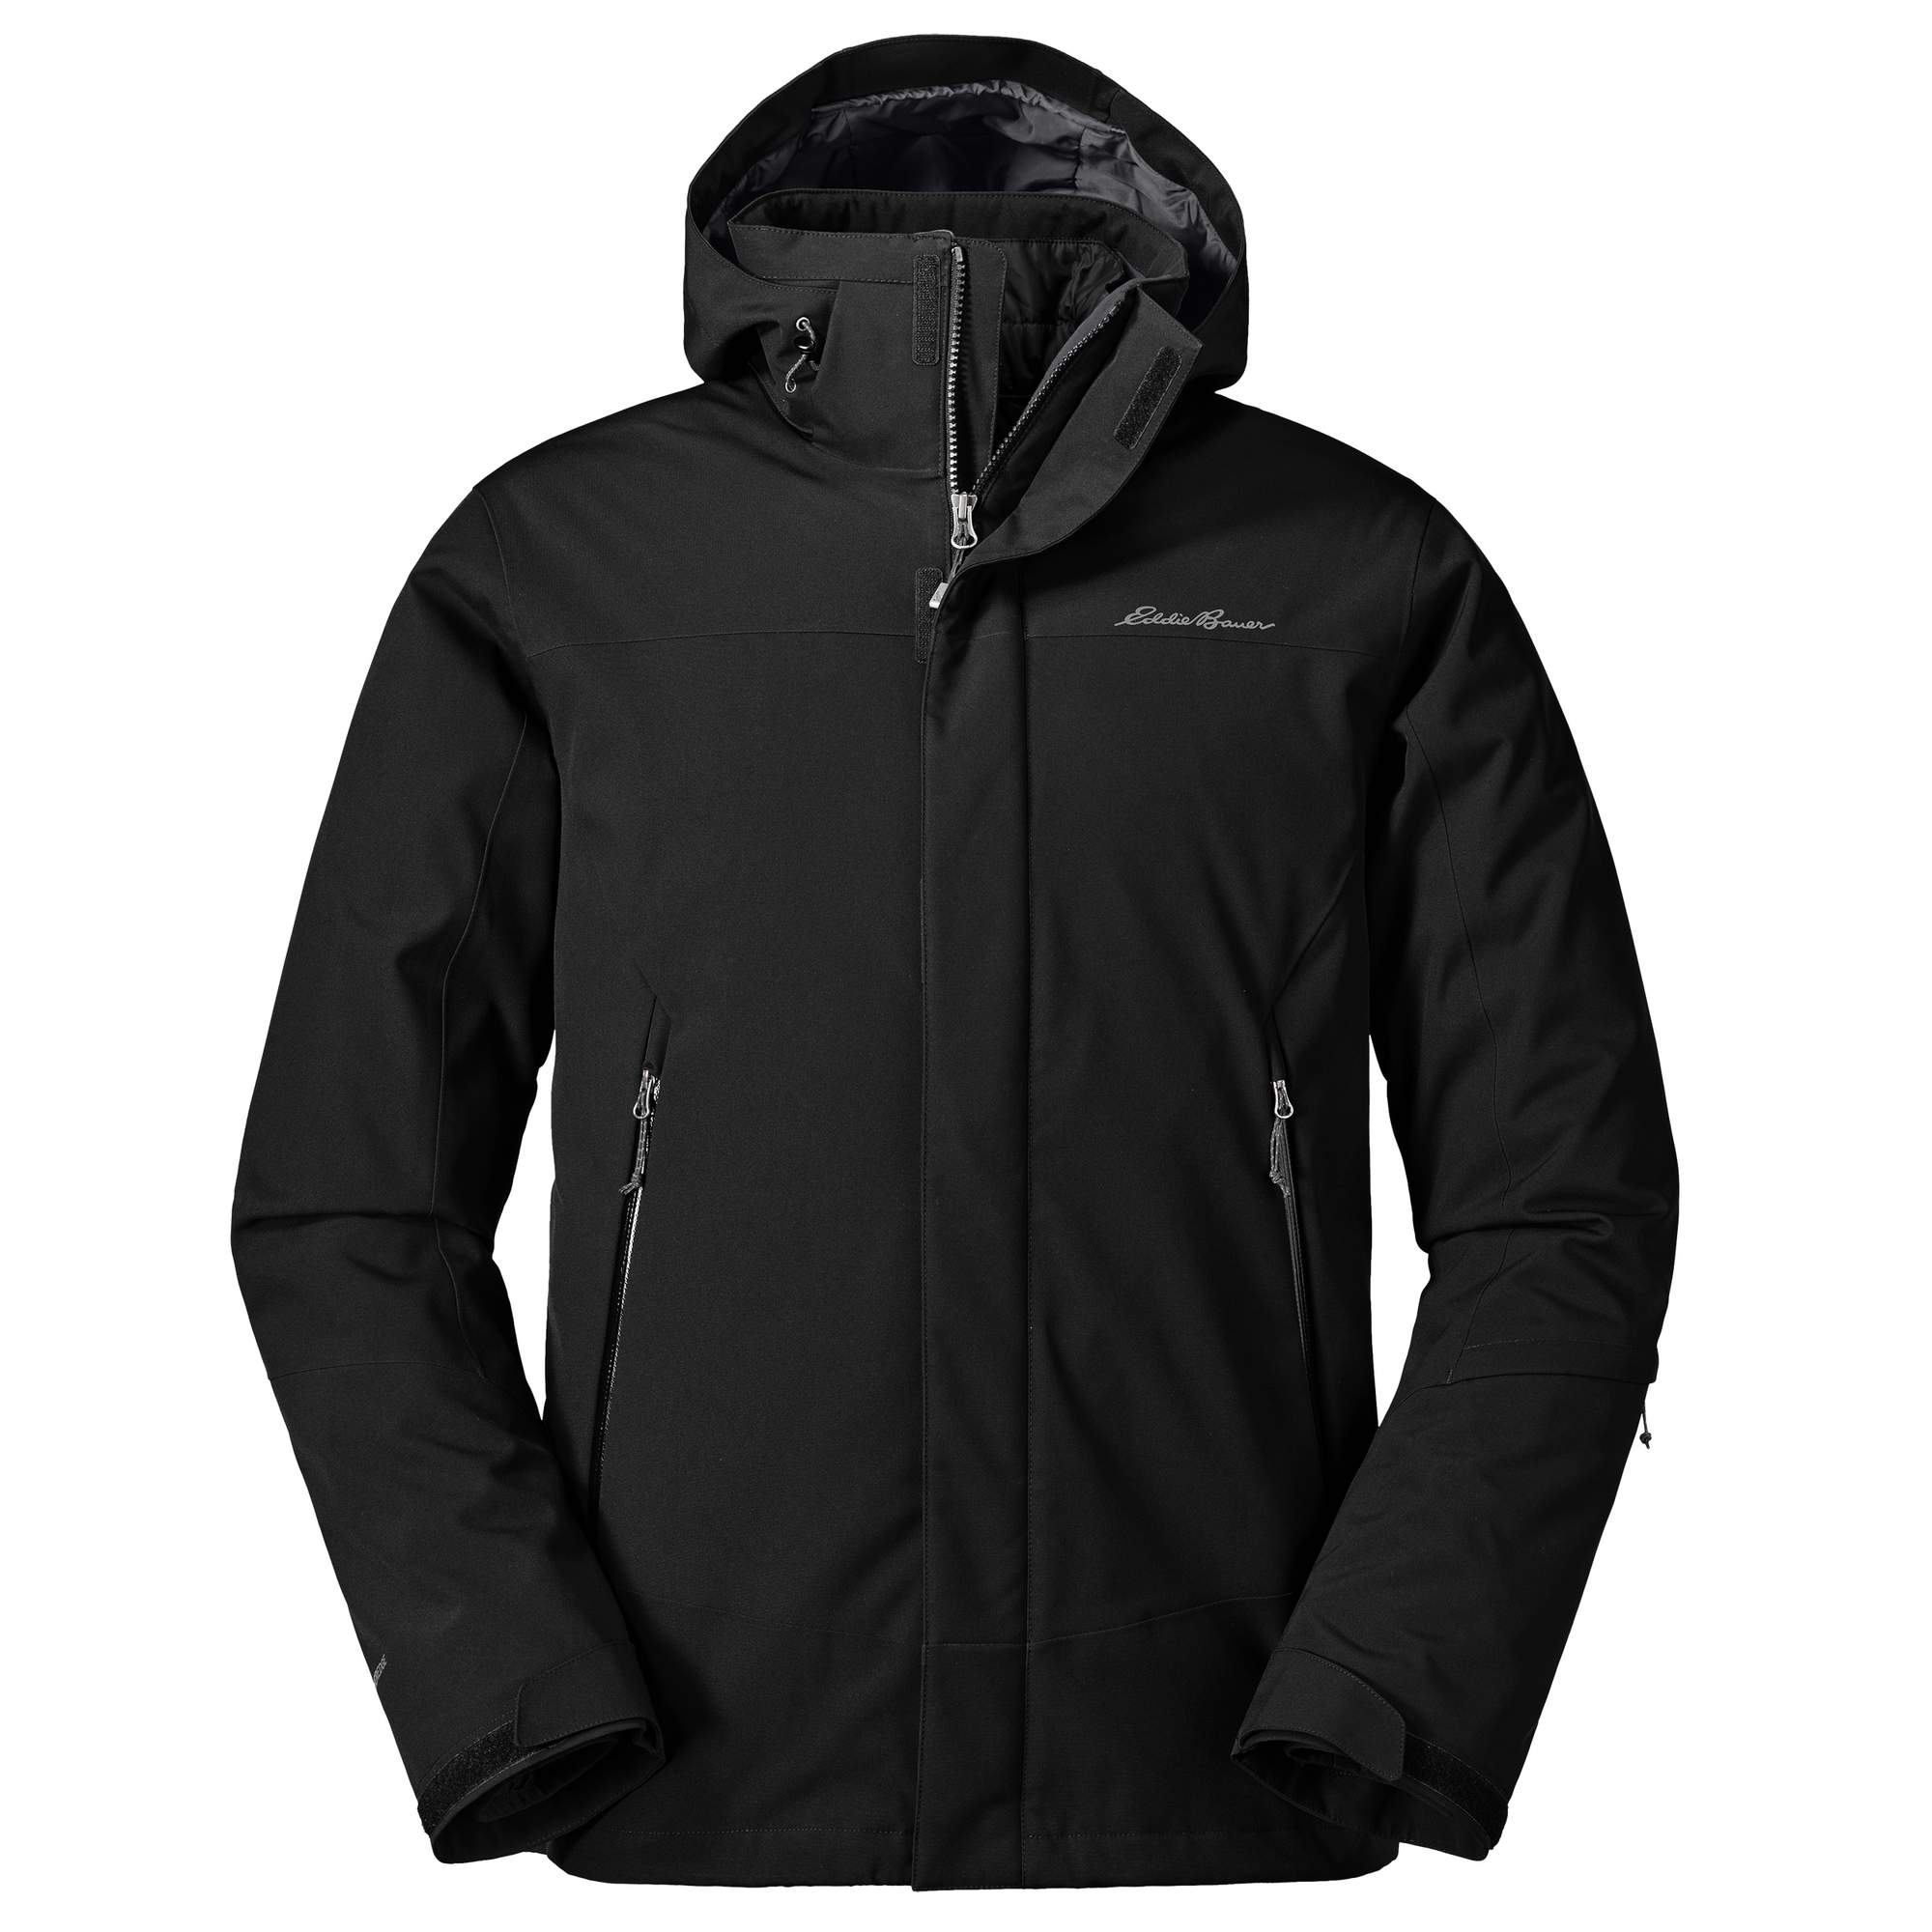 Eddie Bauer Powder Search 2-in-1 Jacke Männer Gr. L - Dop...